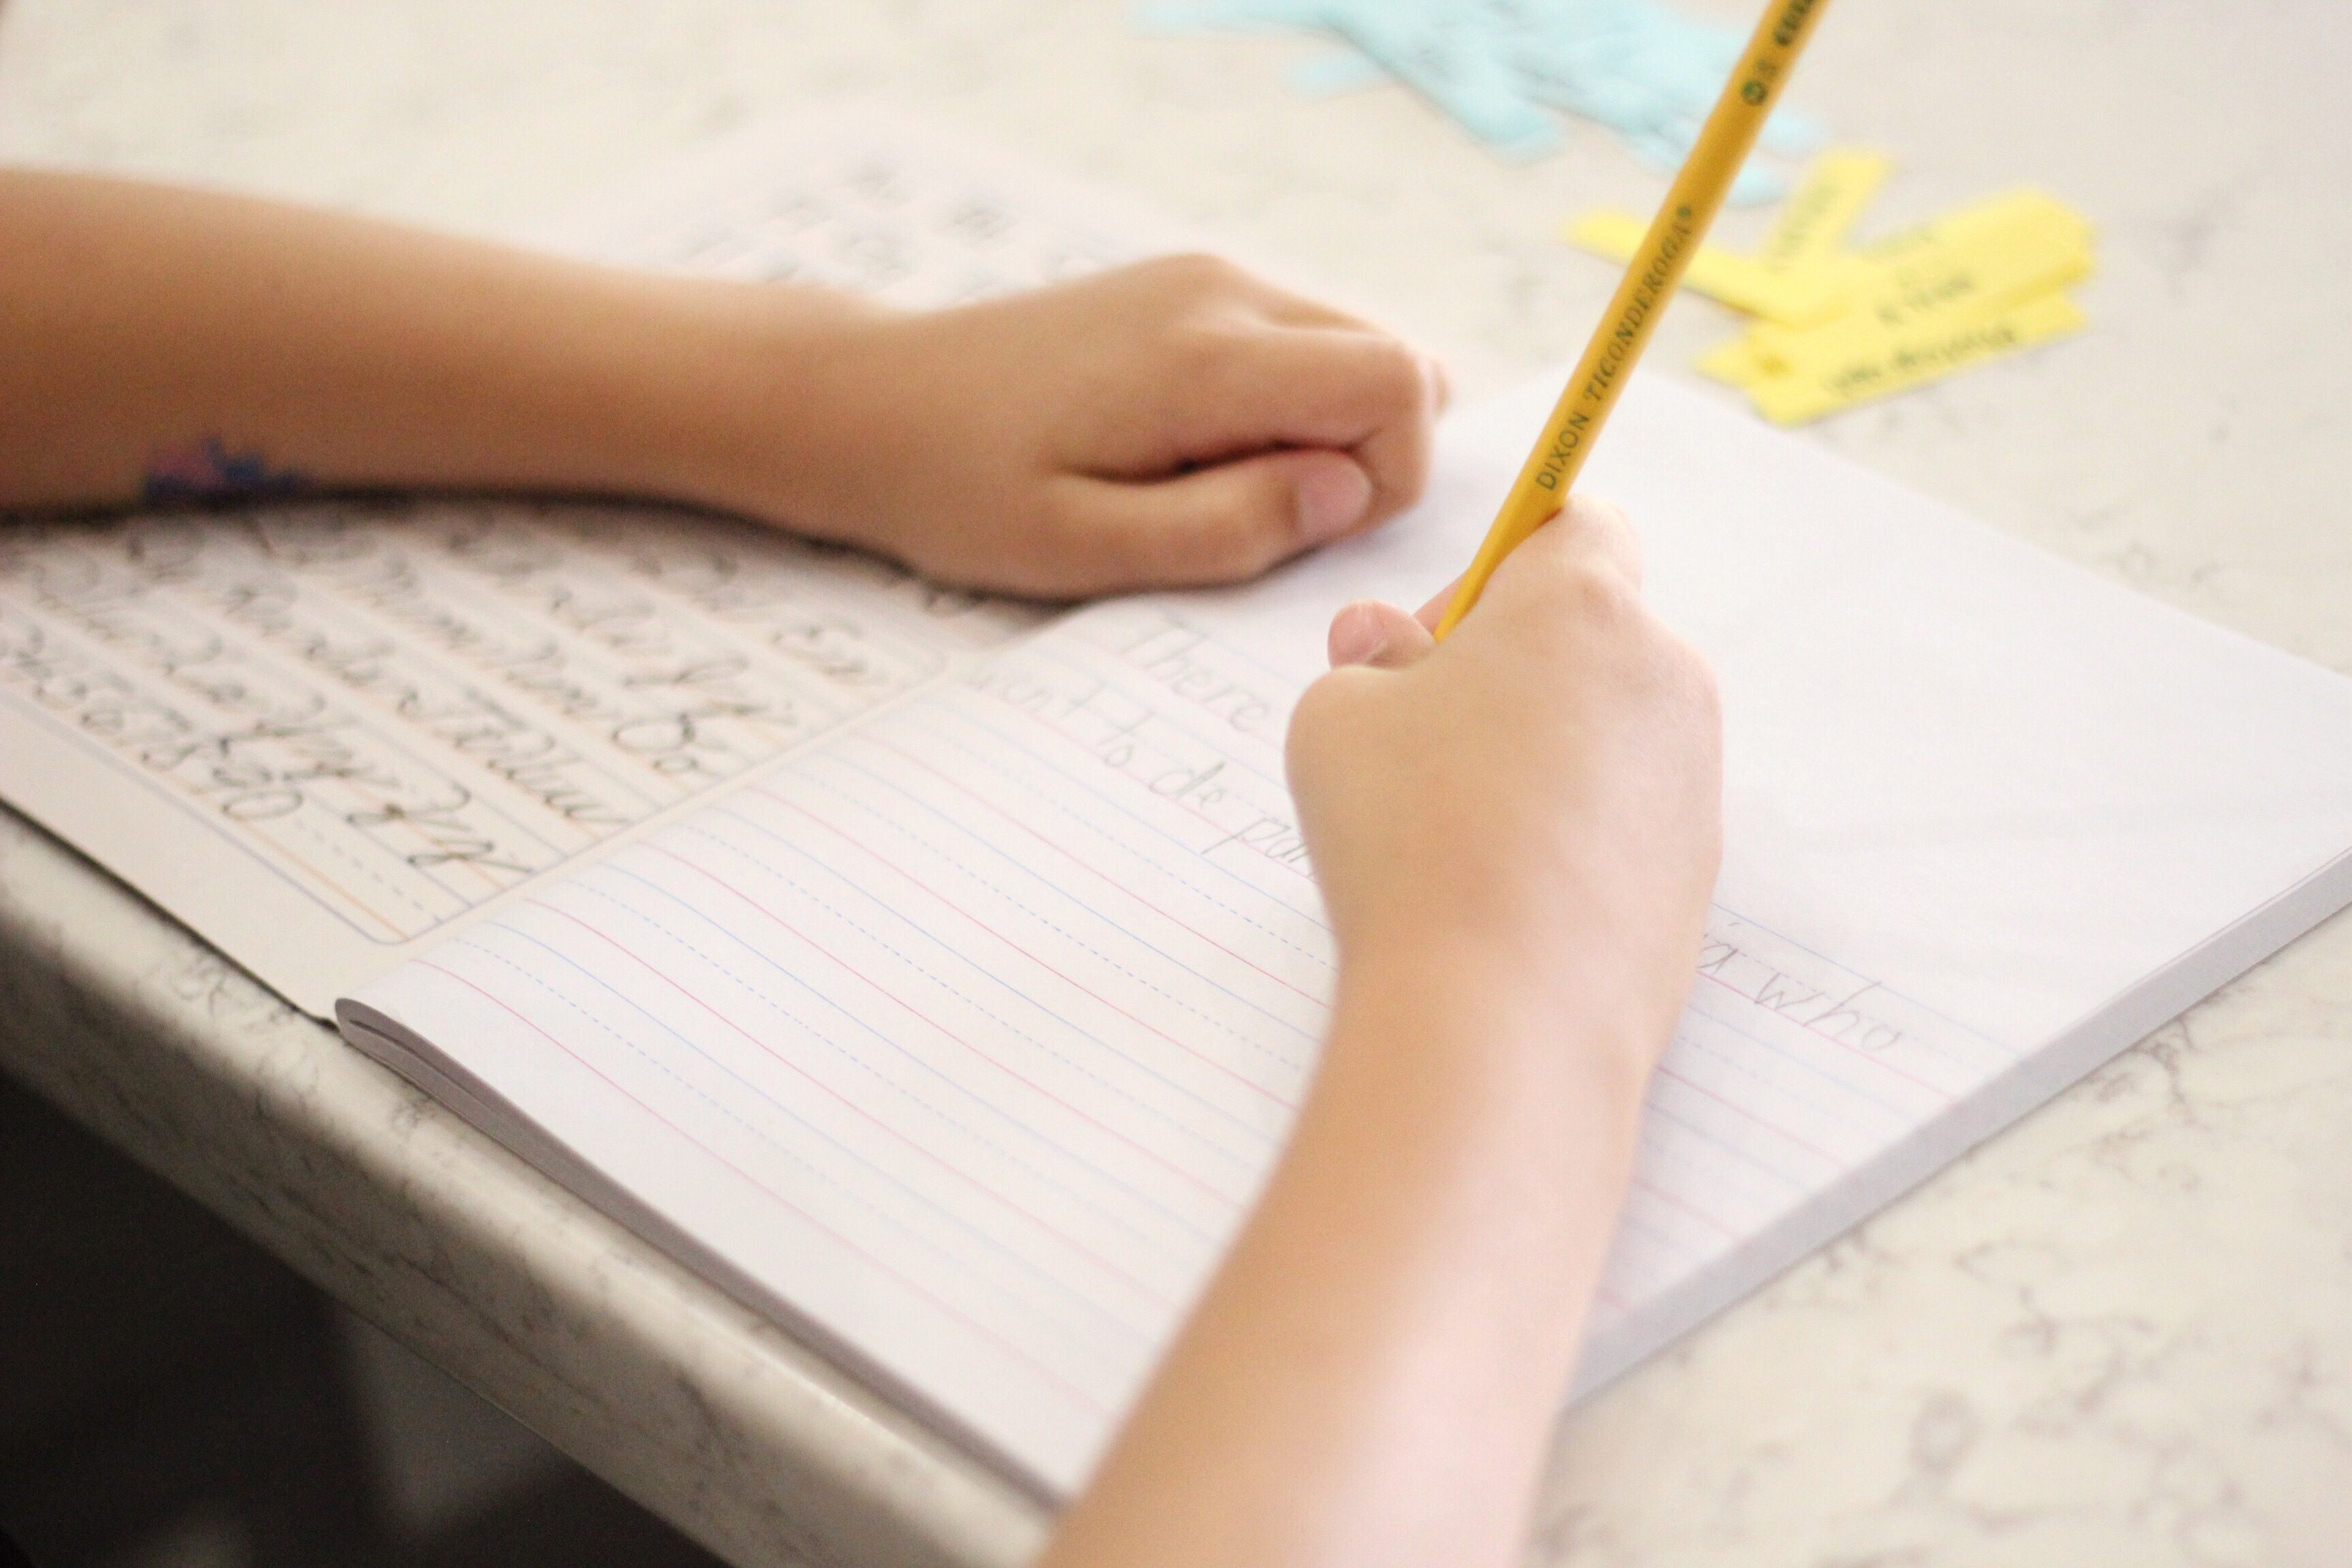 A boy\'s hands writing in a notebook.